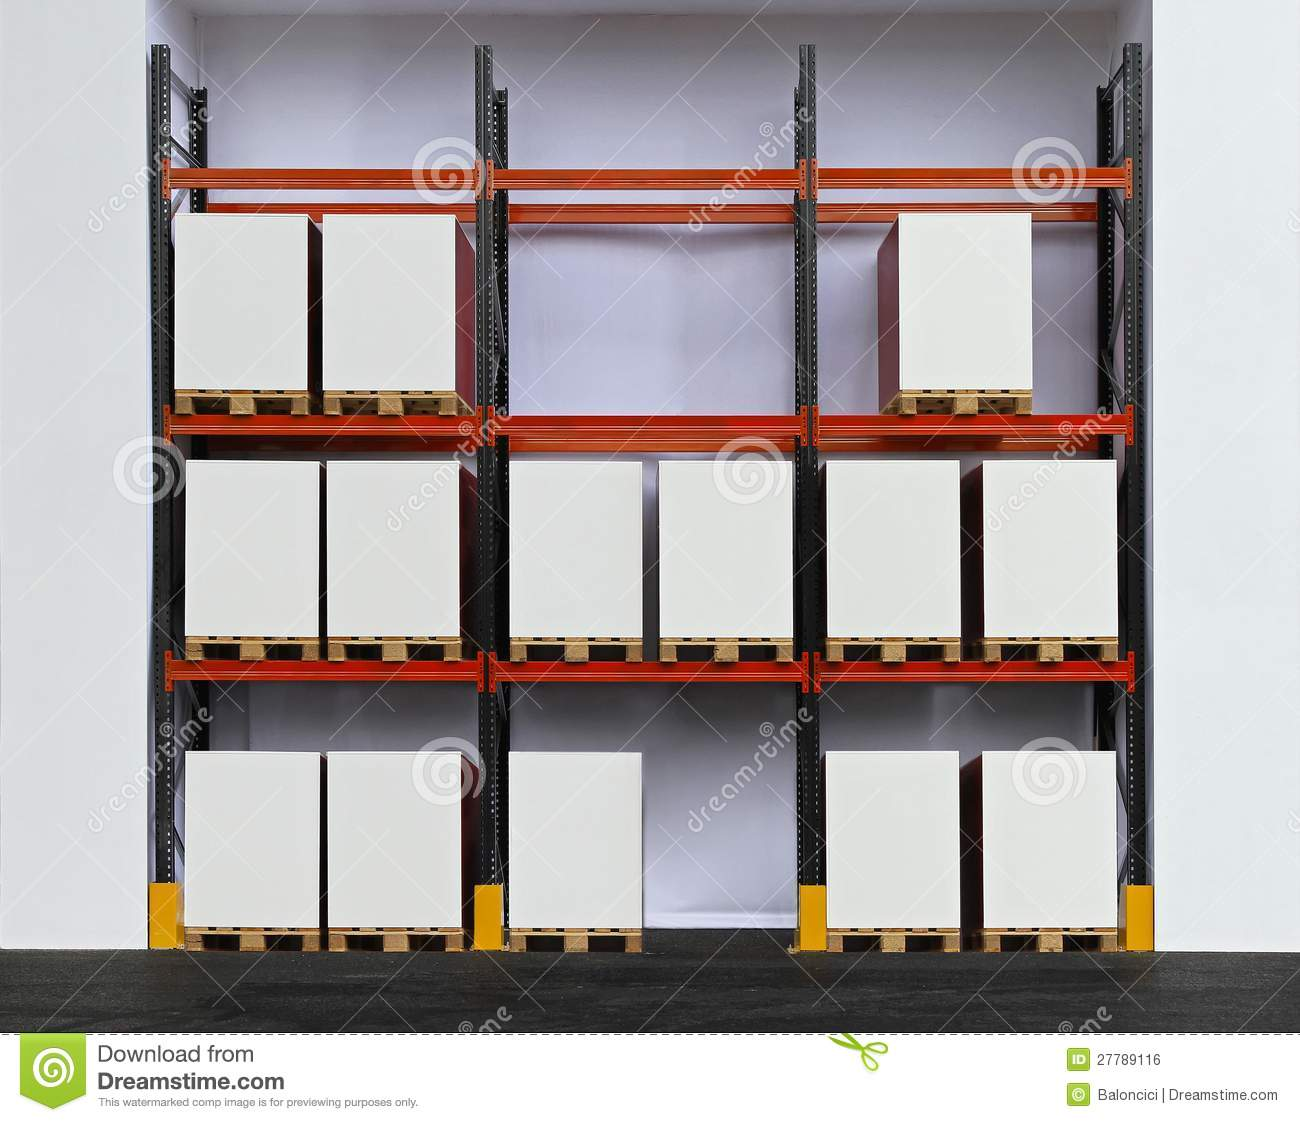 Pallet rack royalty free stock image image 27789116 Warehouse racking layout software free